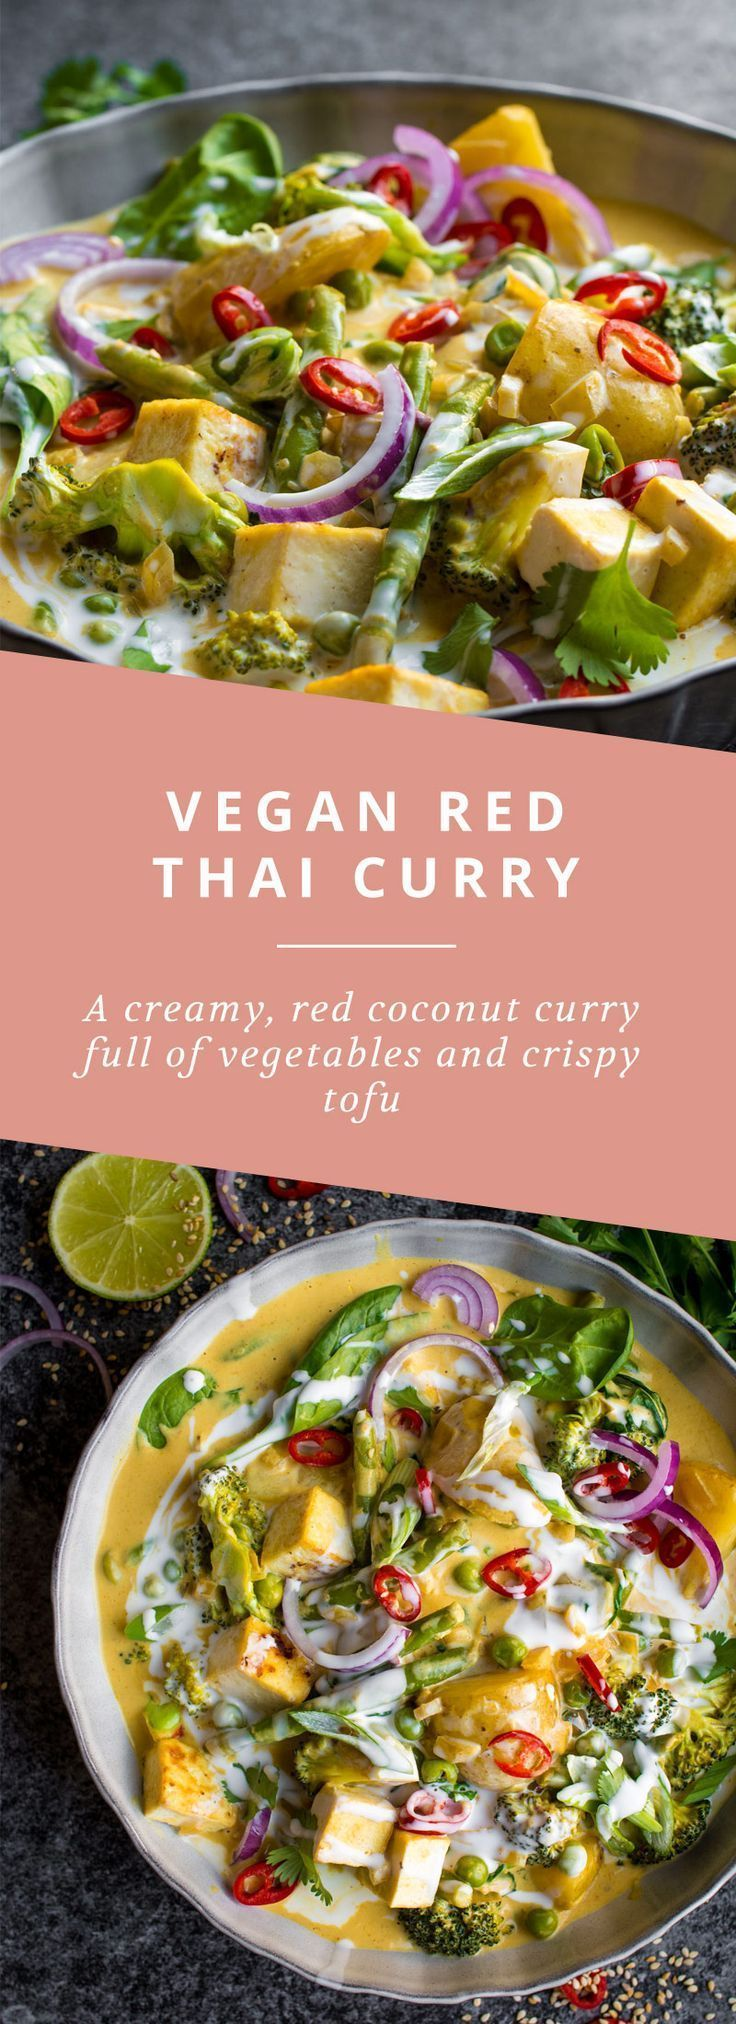 Treat yourself to some snacks! http://amzn.to/2oEqnkm Vegan Red Thai Curry, full of vegetables and crispy tofu